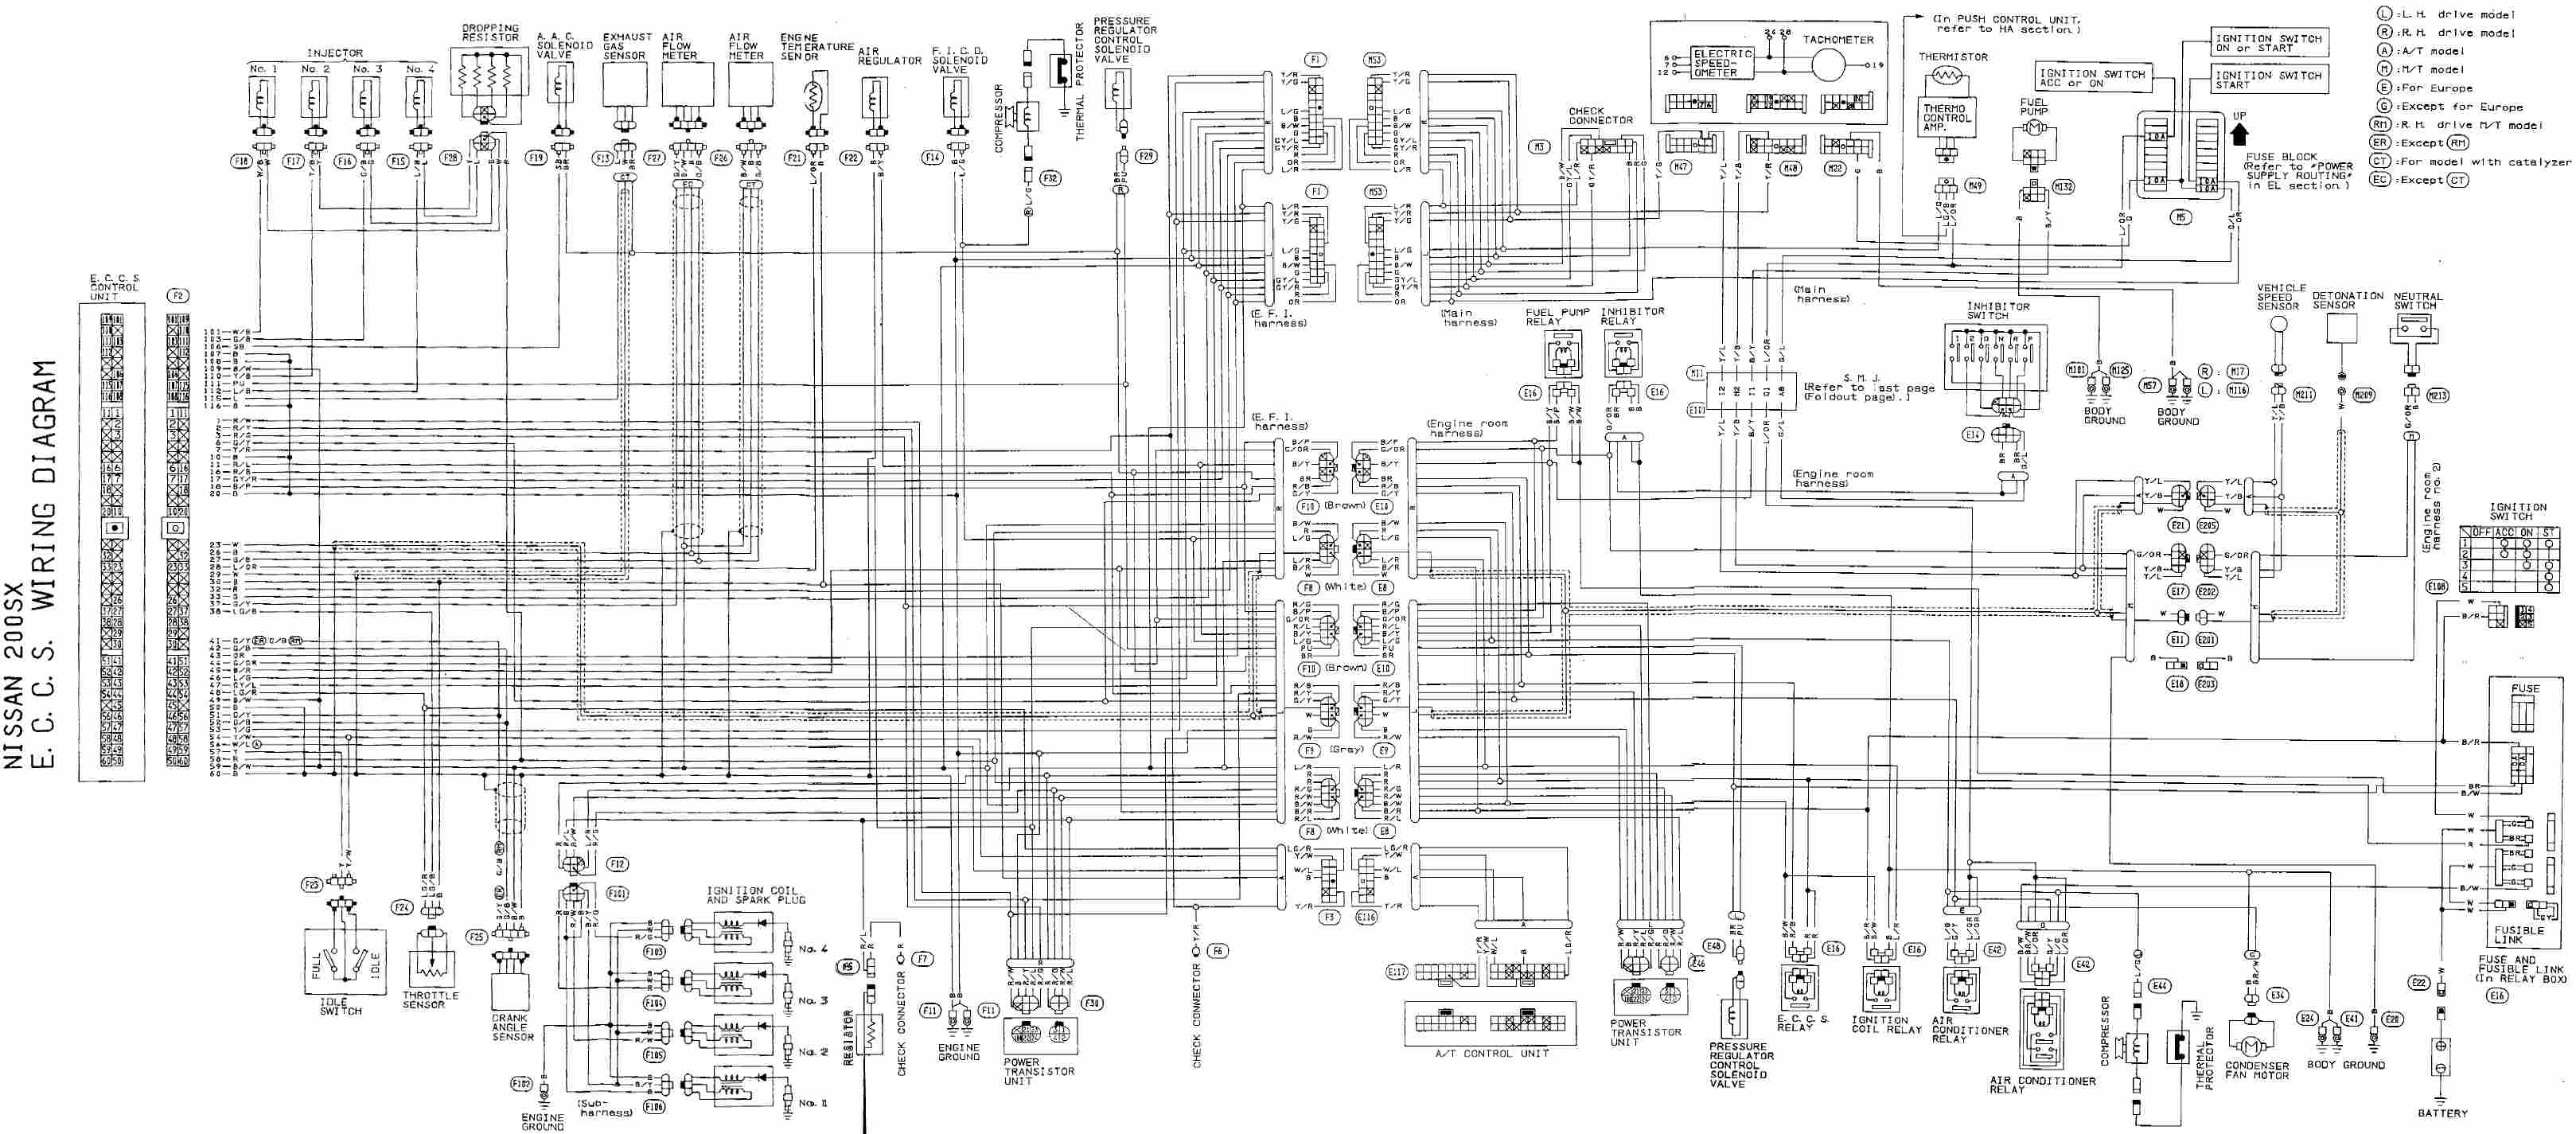 Nissan on 2000 cadillac deville radio wiring diagram